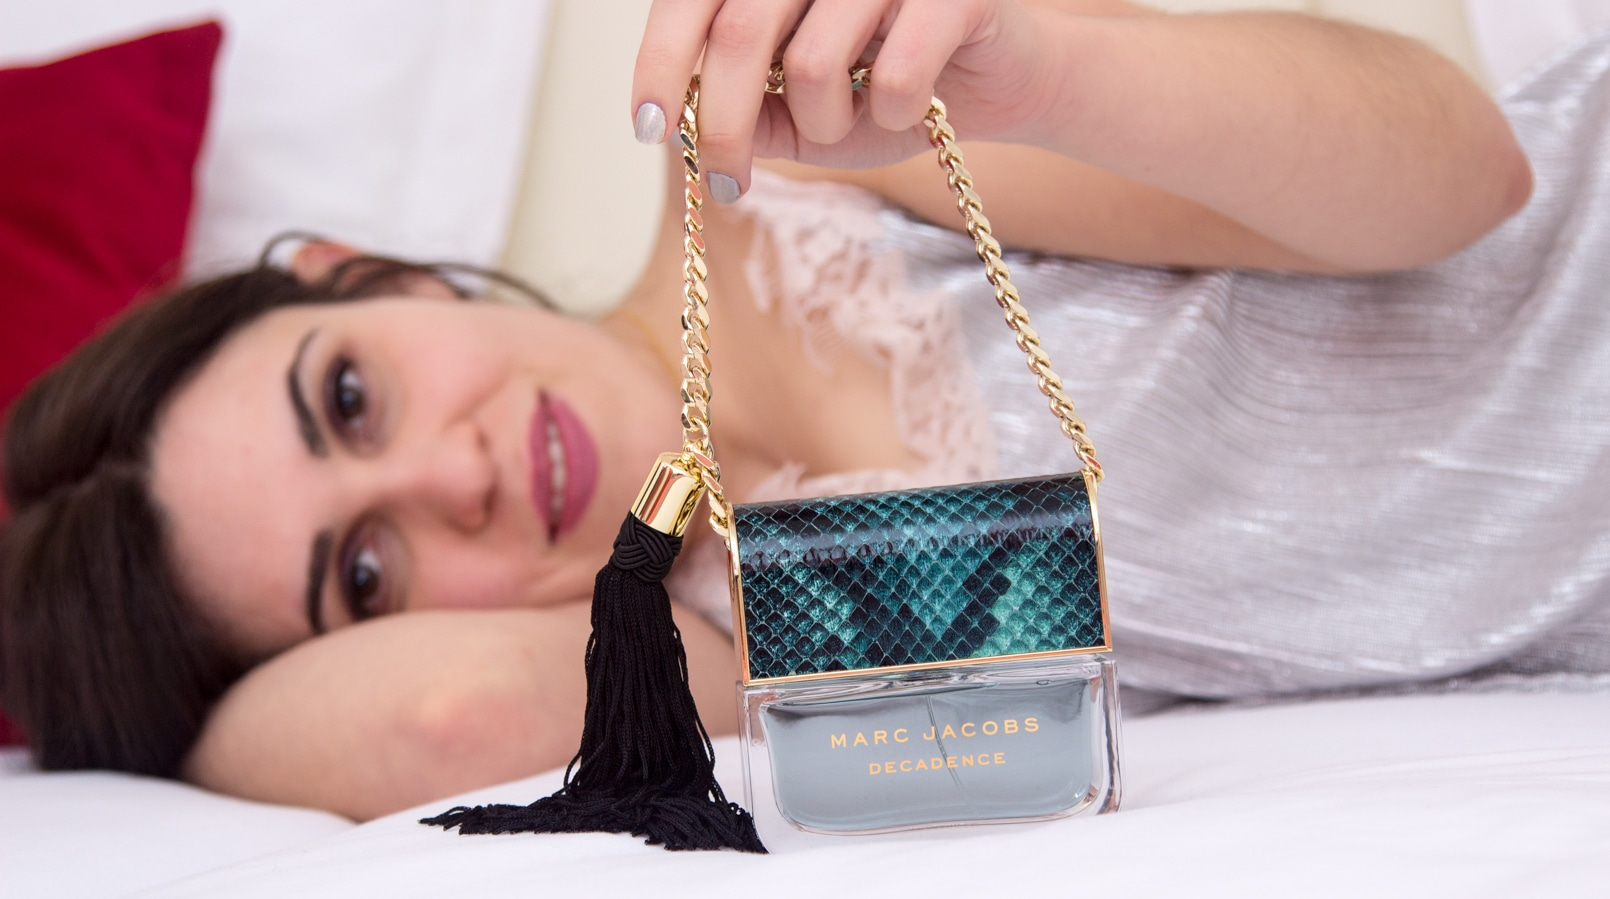 Le Fashionaire Decadence by Marc Jacobs night sleep silver pale pink lace women secret dress gold triangle necklace decadence perfume marc jacobs bag like snake print green 3156F EN